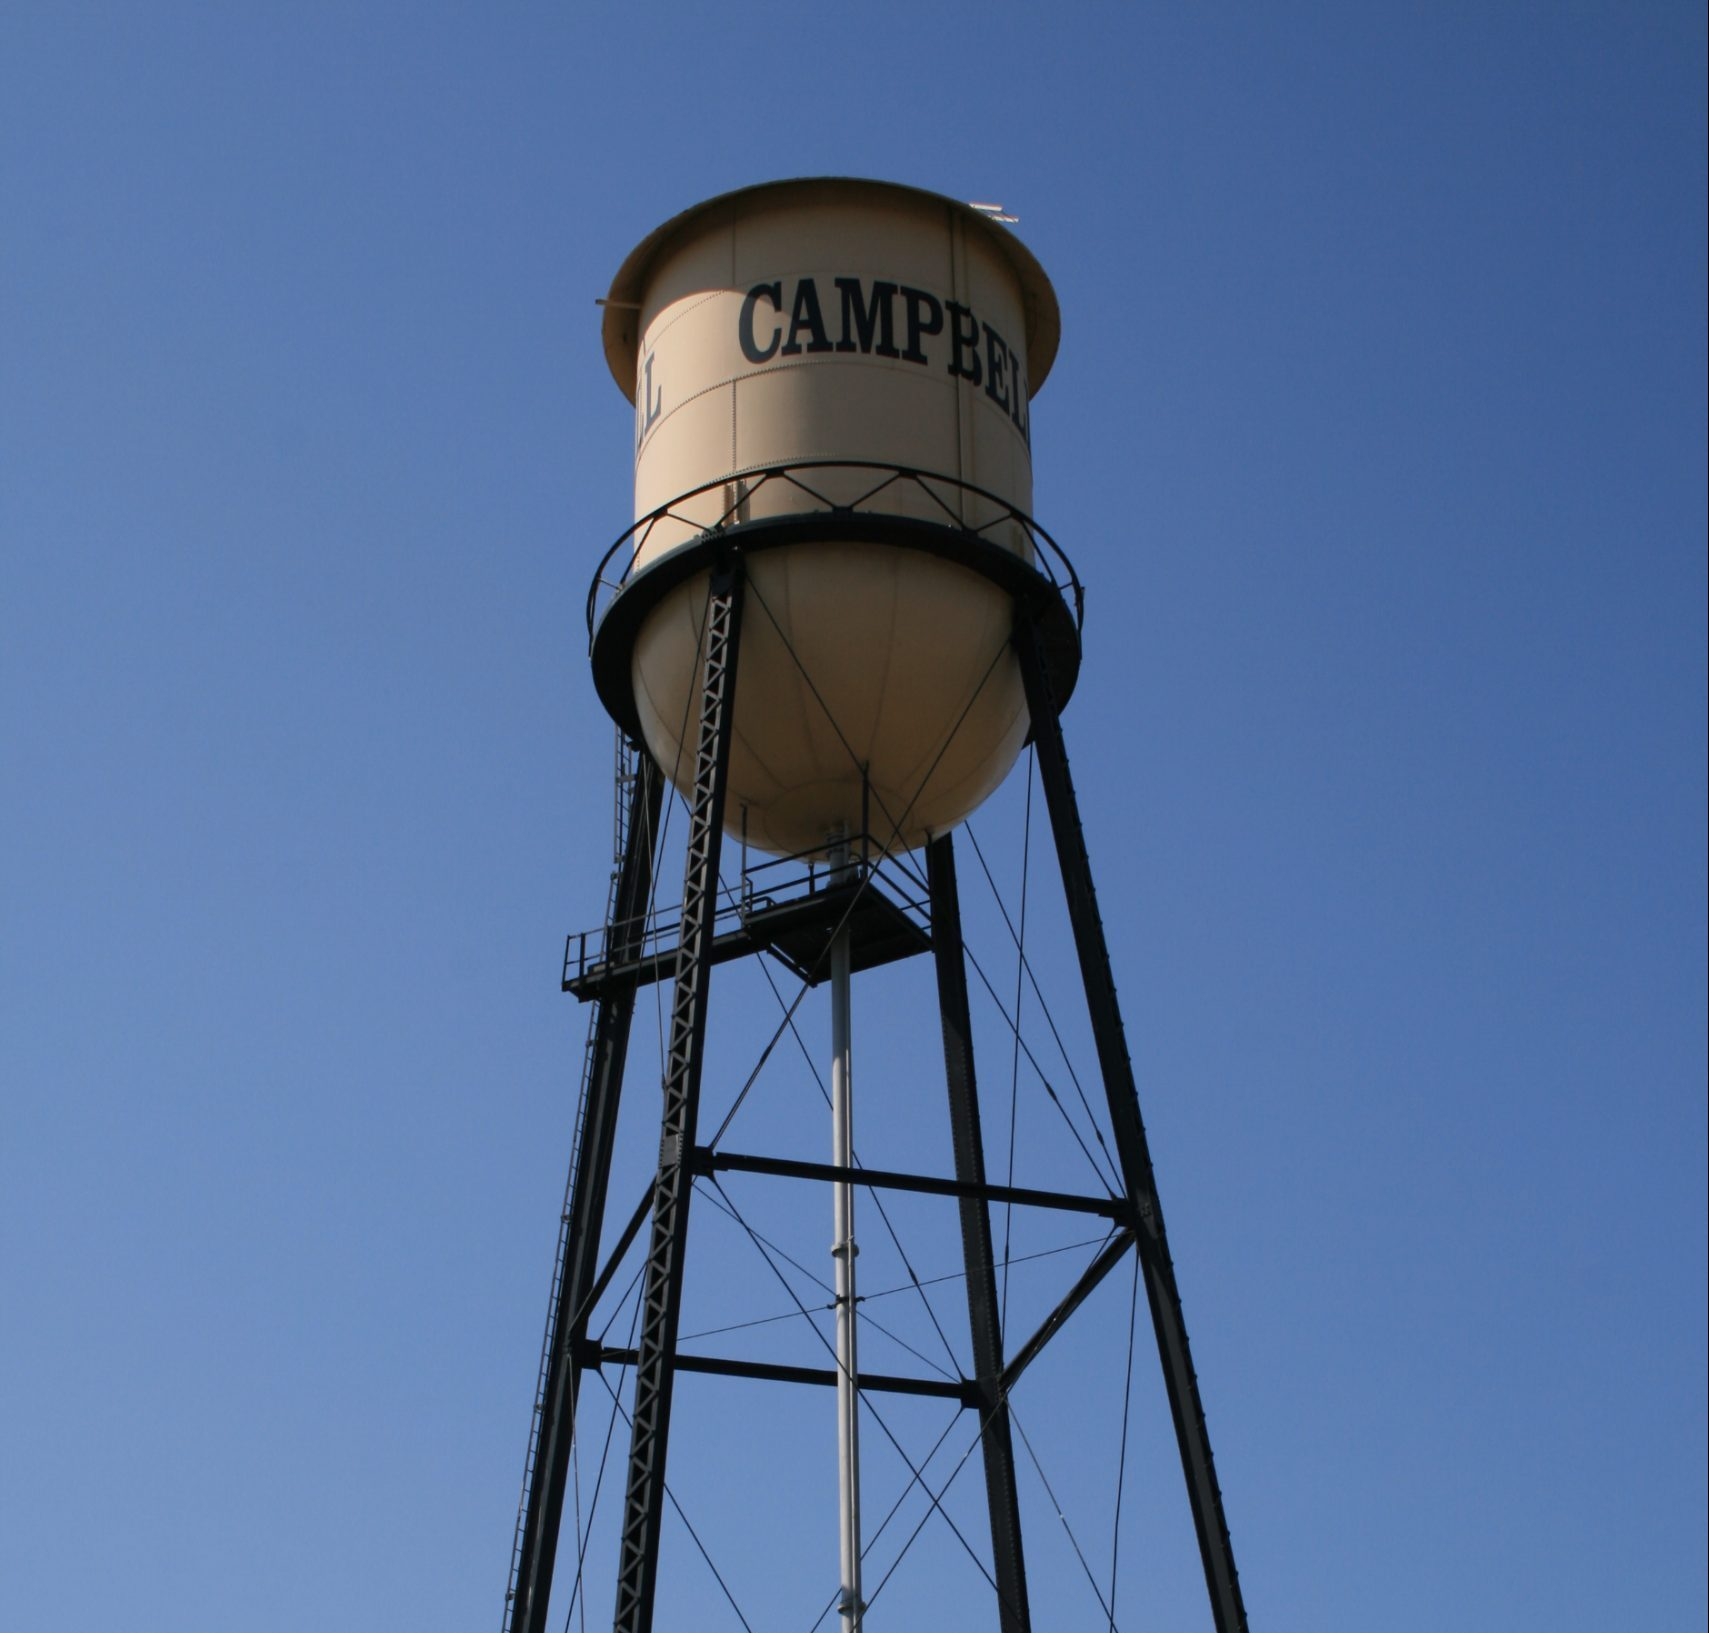 The campbell water tower